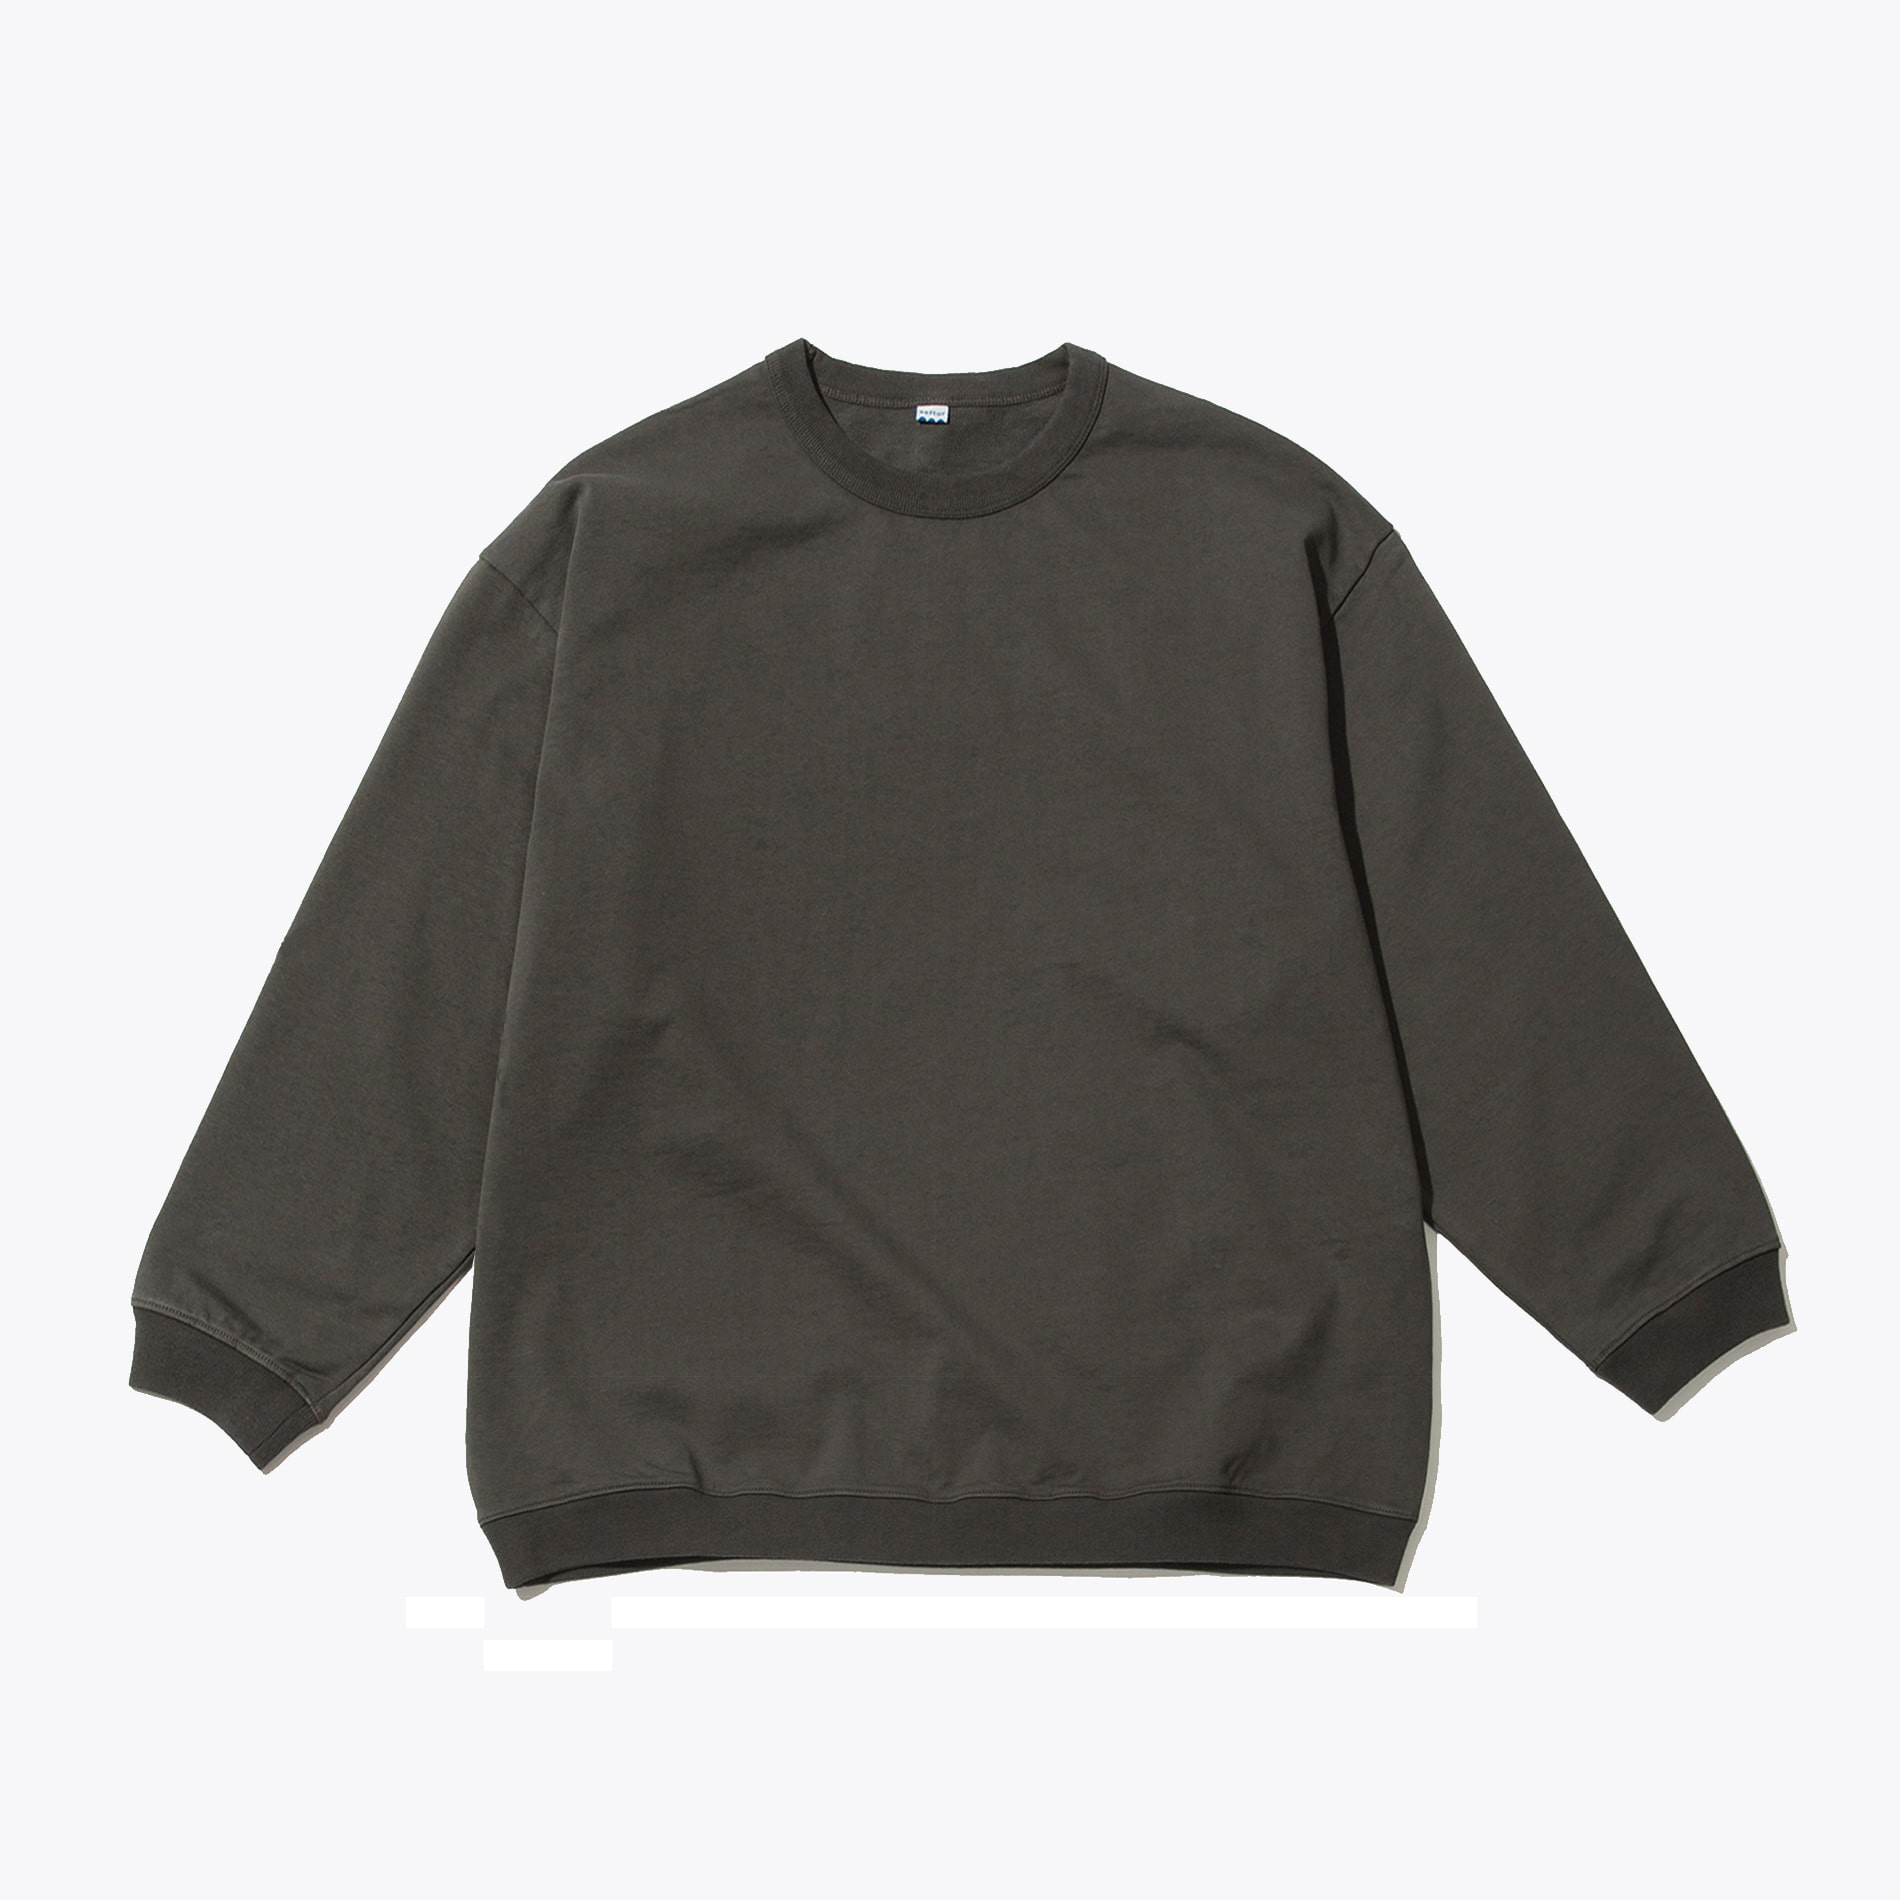 BAGGY SWEATSHIRT CHARCOAL